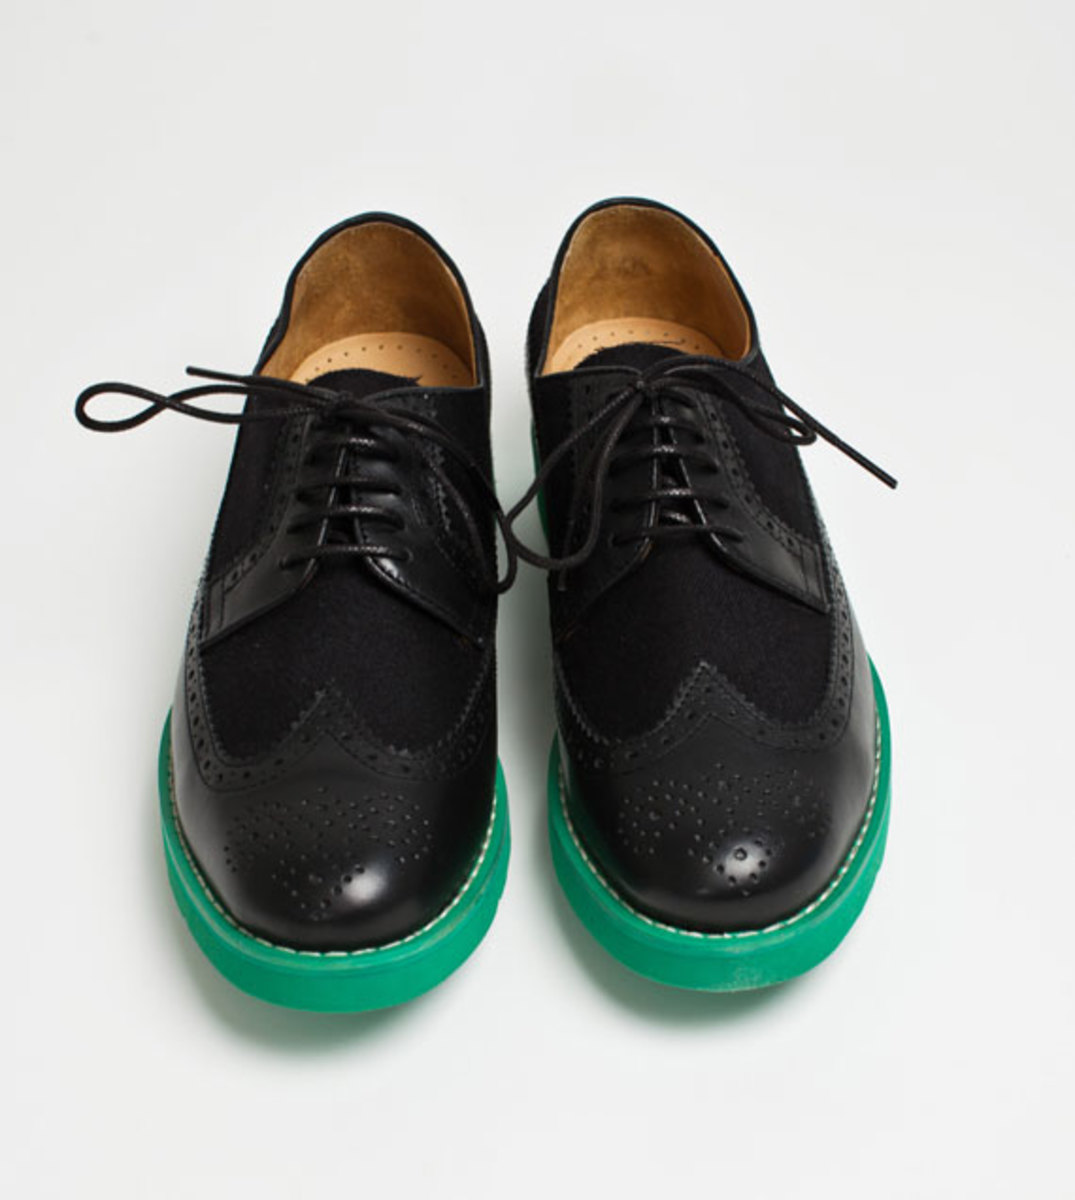 comme-des-garcons-shirt-the-generic-man-fall-2012-footwear-collection-17